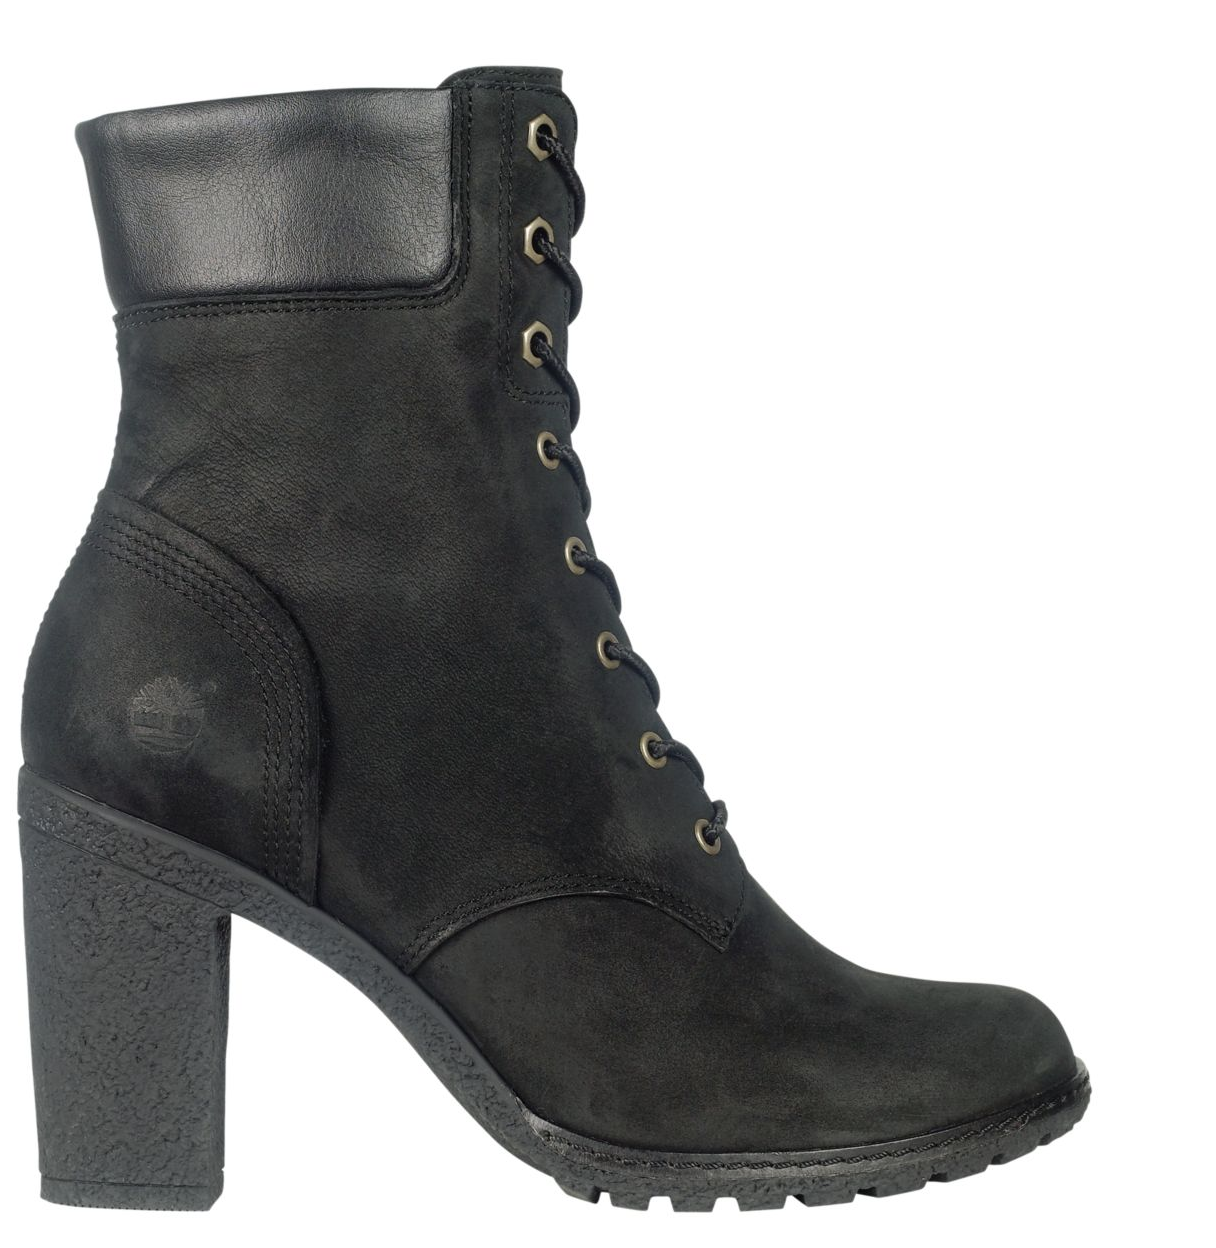 Boots - These ones in particular are the most comfortable heels she'll ever slip on. $130 at Timberland.